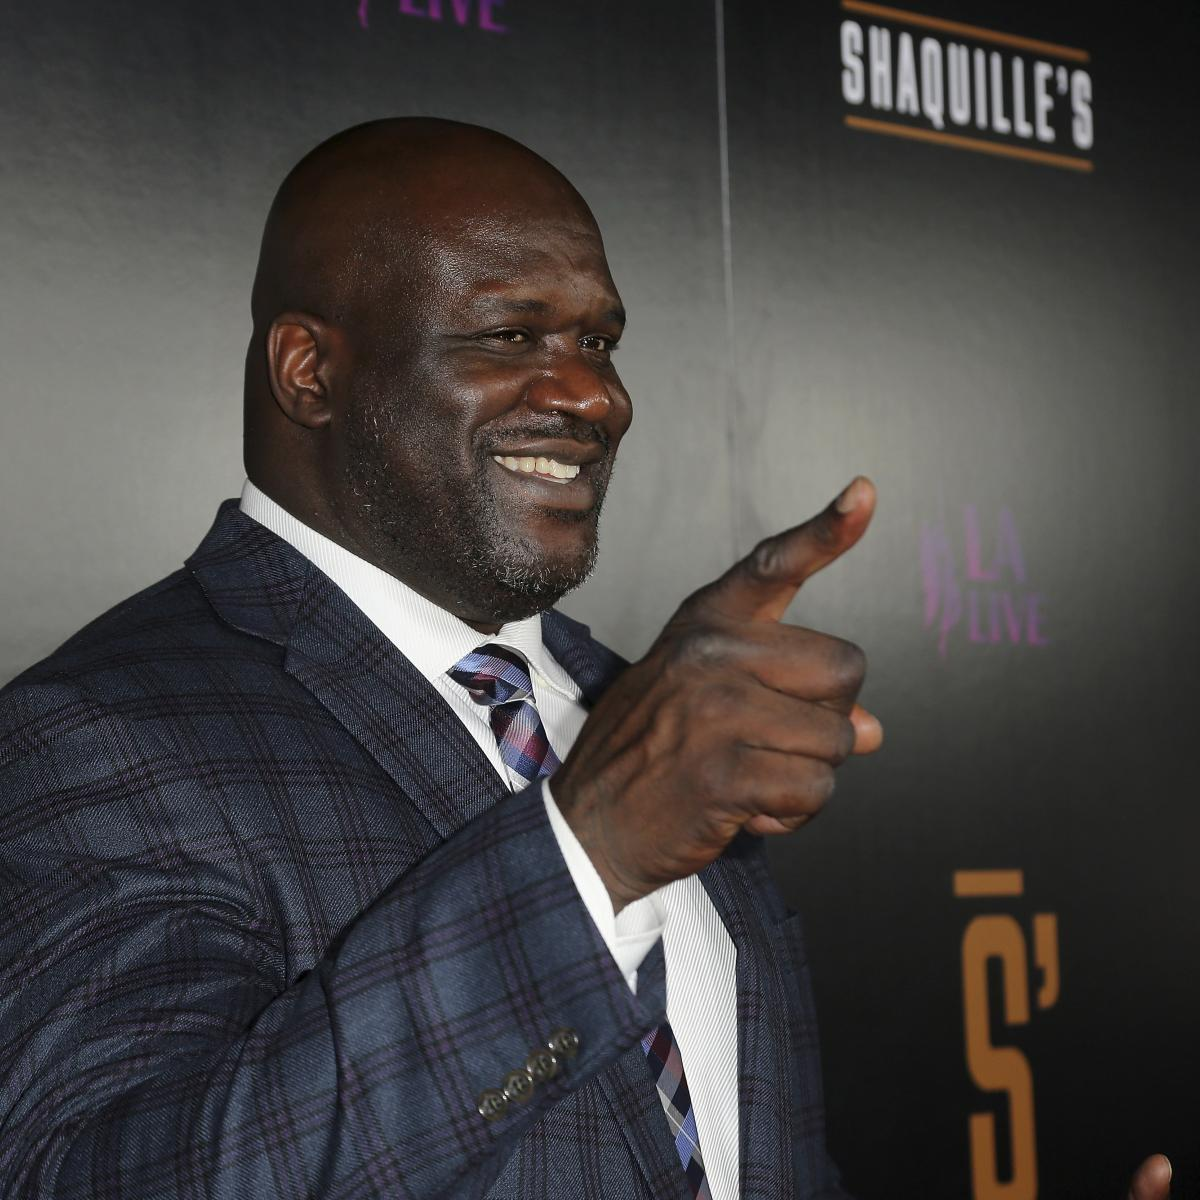 Shaquille O'Neal will DJ at Lollapalooza